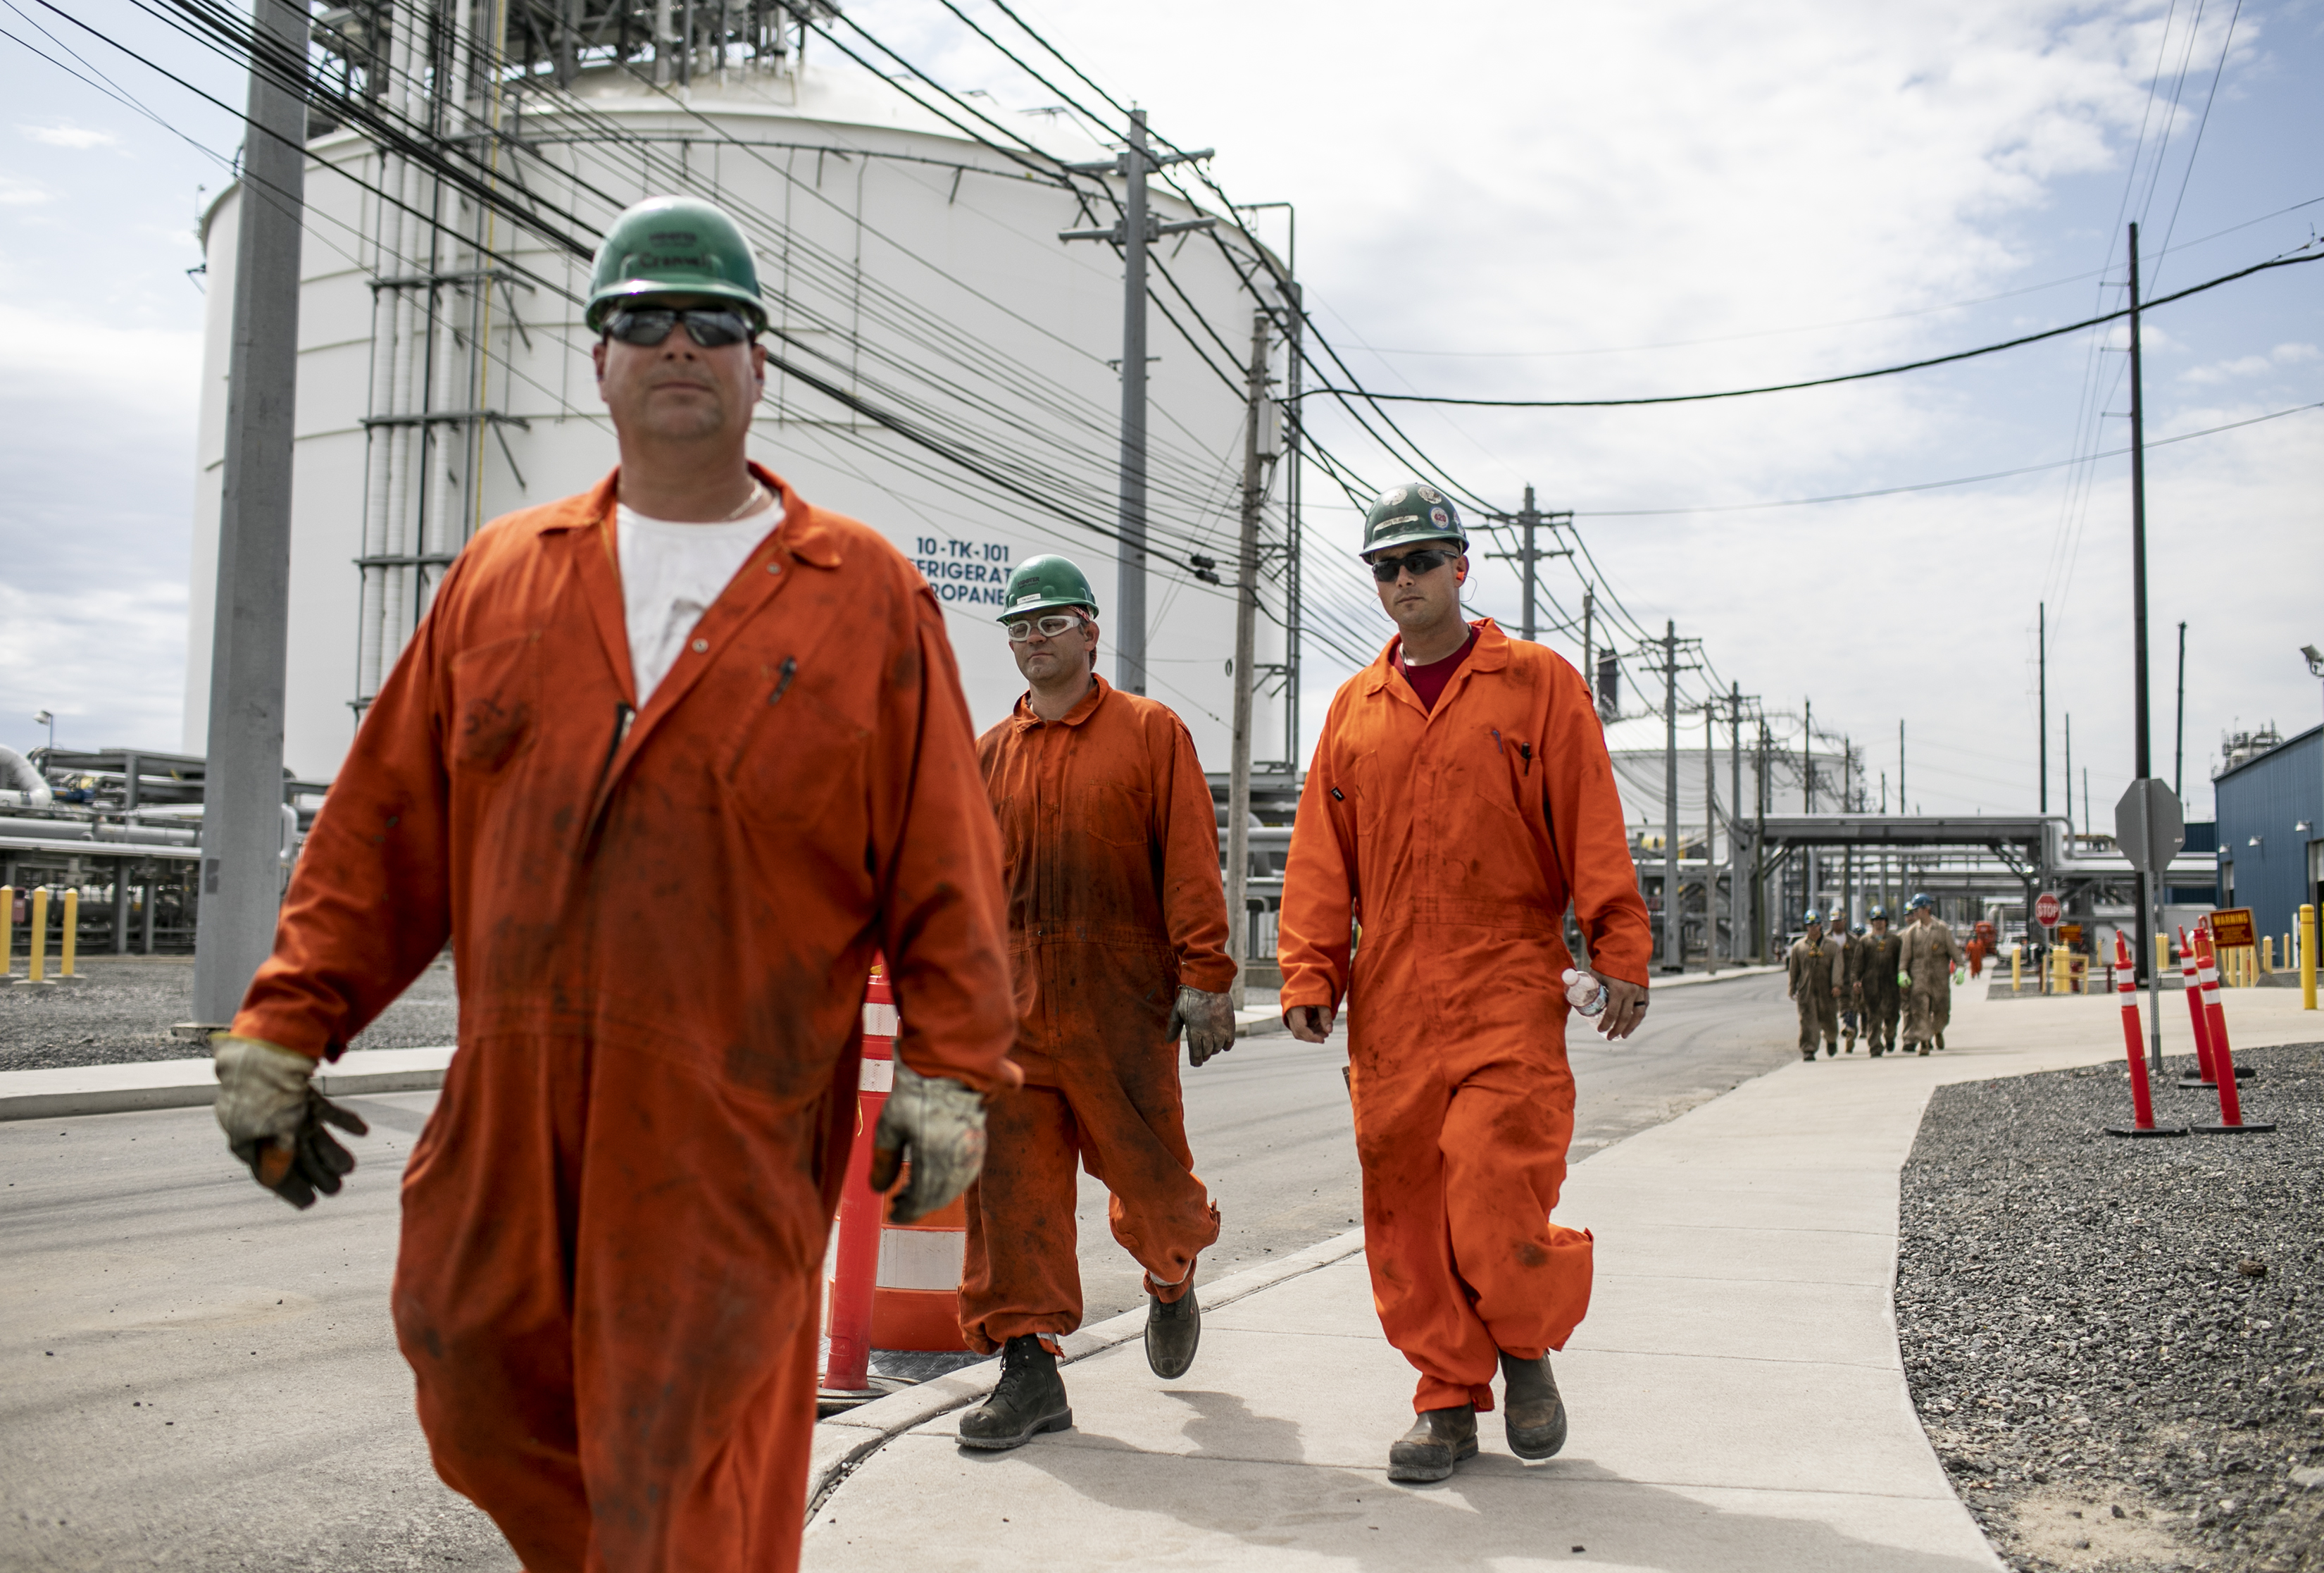 Hundreds of Laborers Continue Modification Work at Marcus Hook Industrial Complex